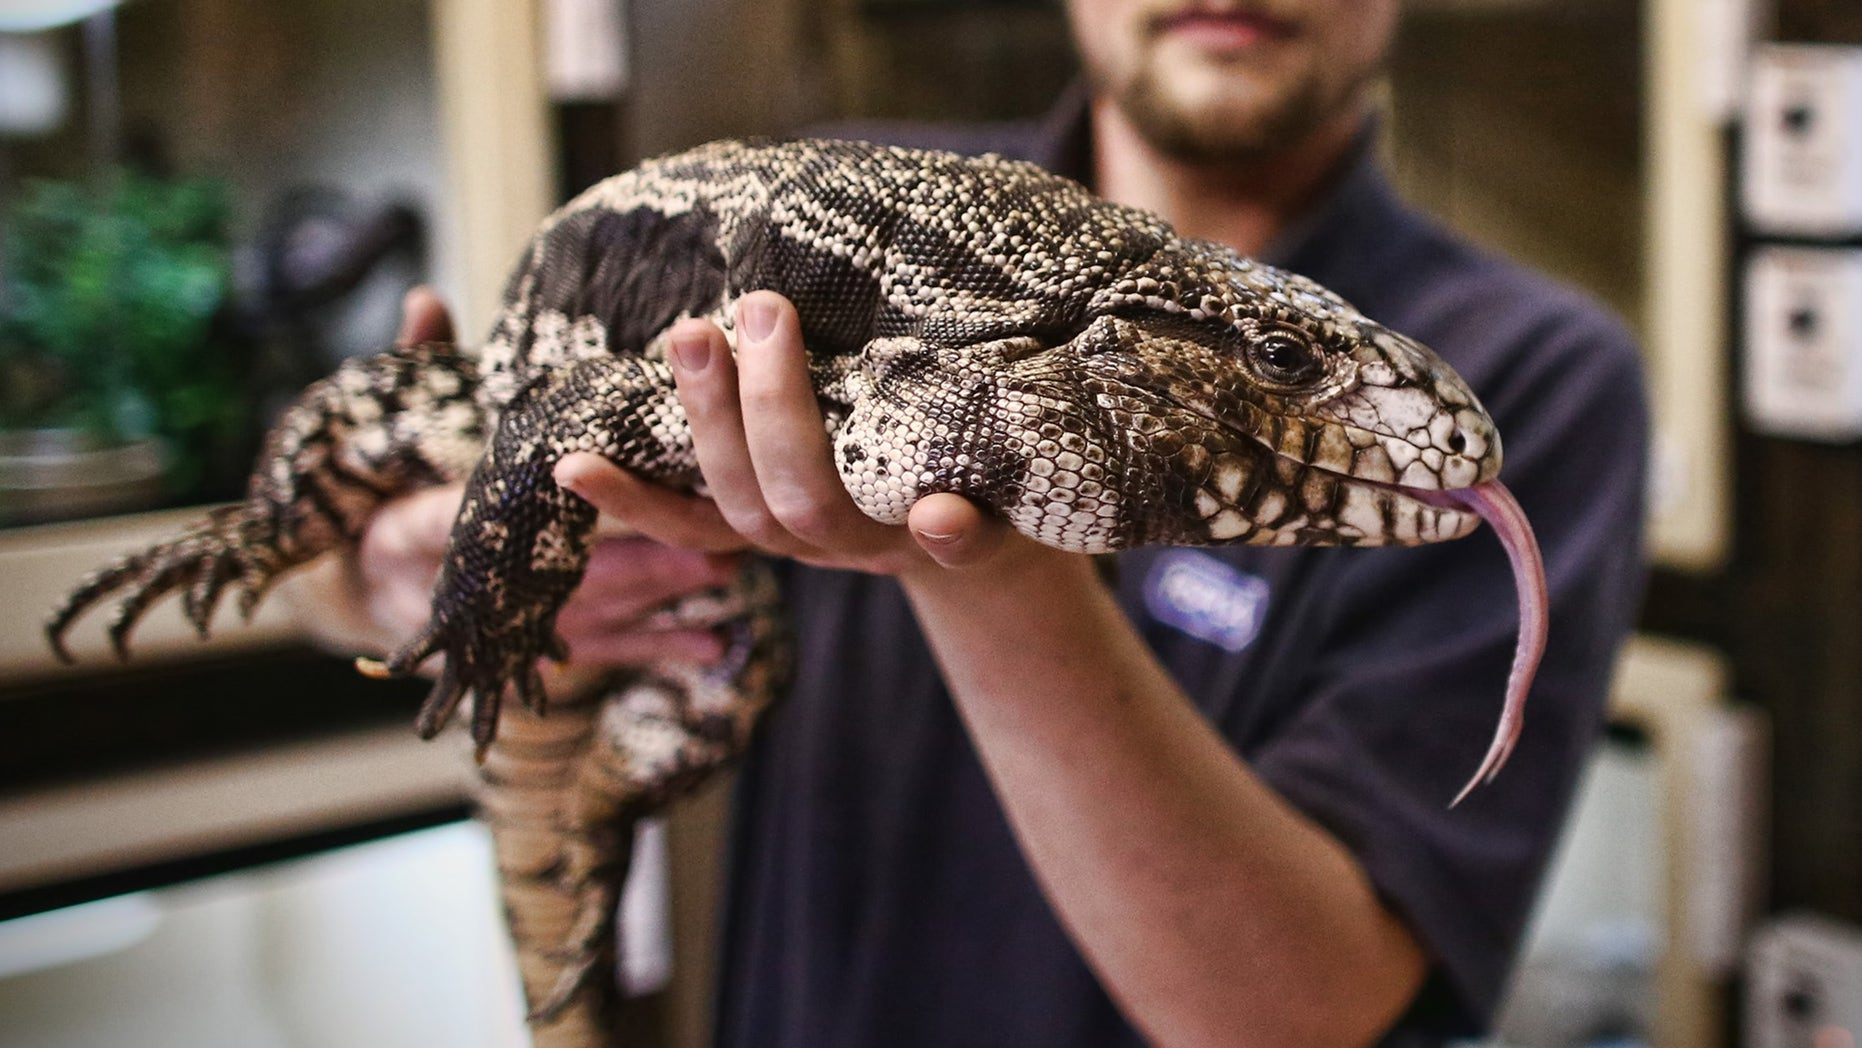 Reptile Rescue Coordinator Tom Bunsell handles an Argentine black and white tegu.